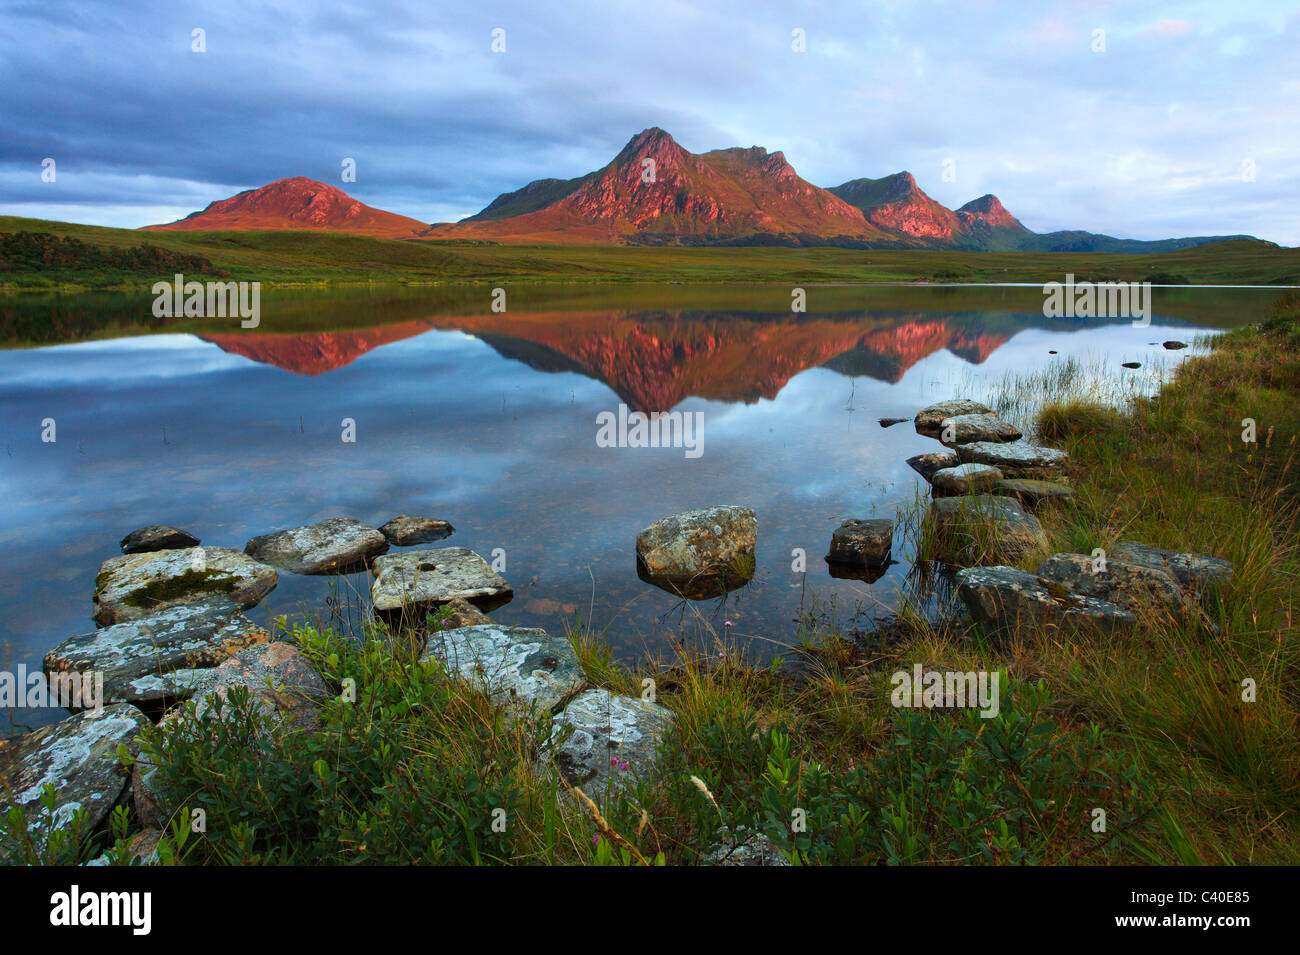 Evening, evening mood, Ben Loyal, mountain, mountains, mountains, bodies of water, summits, peaks, glowing, Highland, - Stock Image